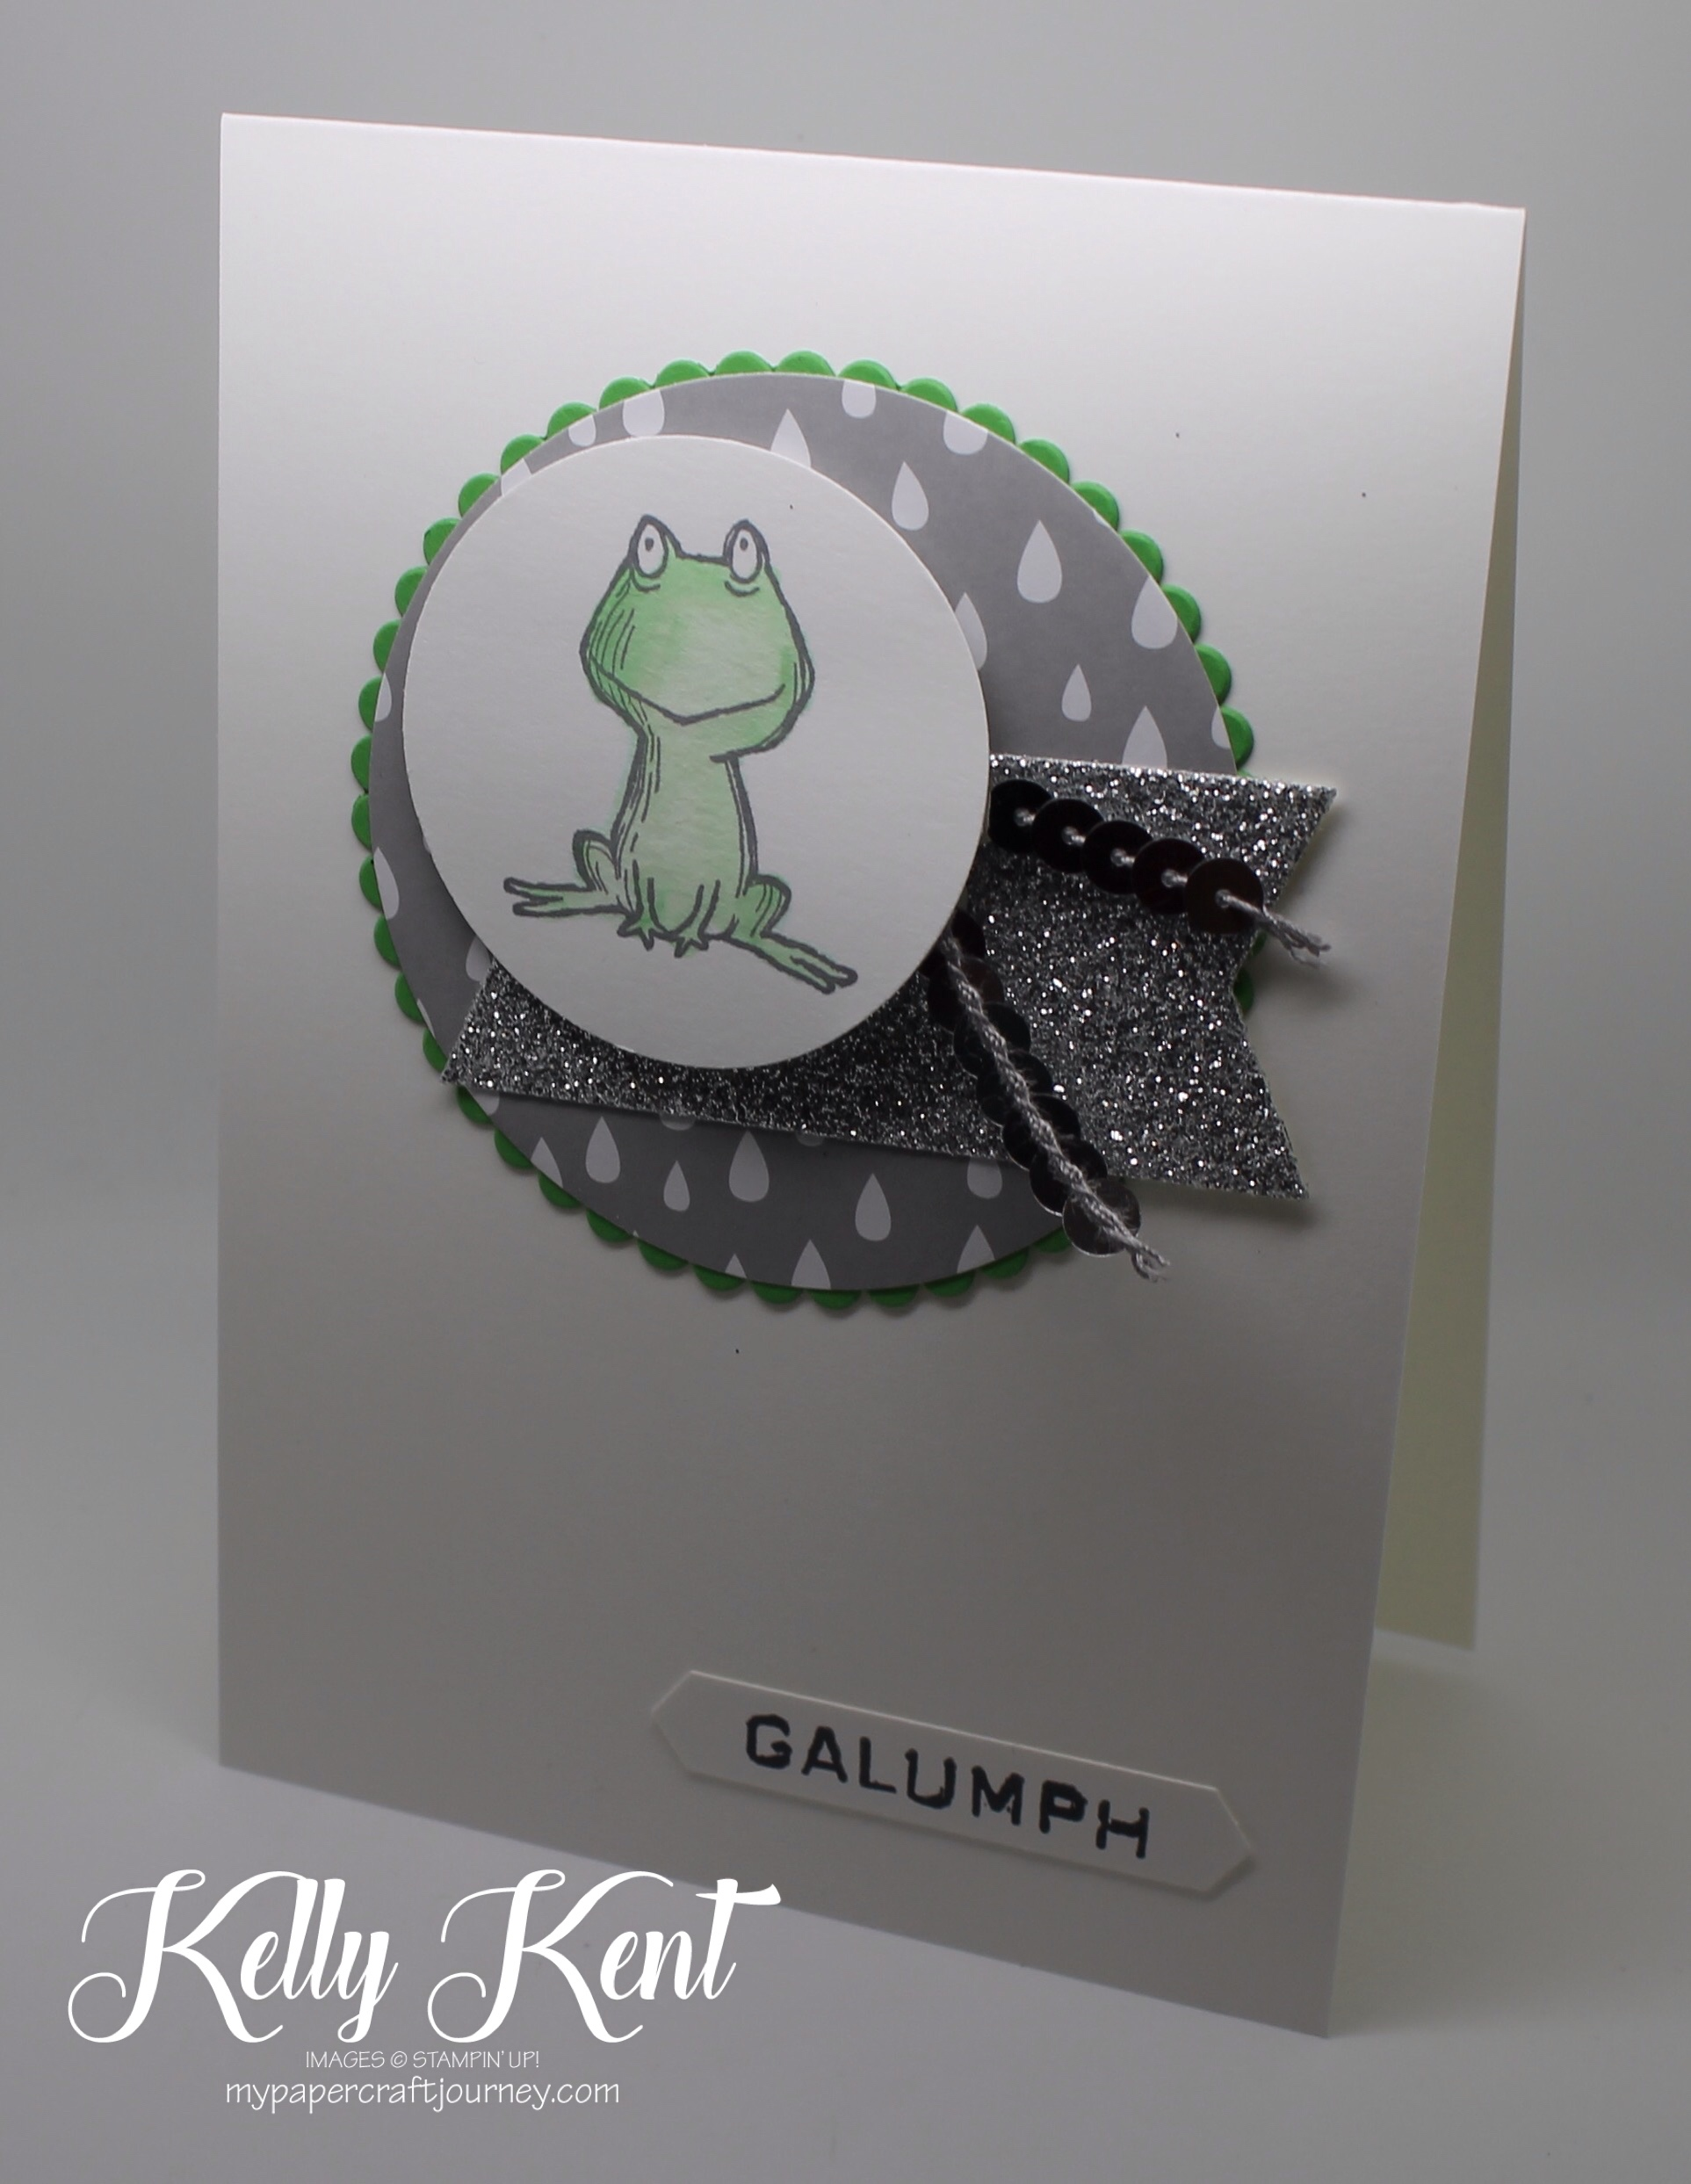 Stamp Review Crew - Love You Lots Host stamp set. Nursery Rhyme set: Galump went the little green frog. Kelly Kent - mypapercraftjourney.com.